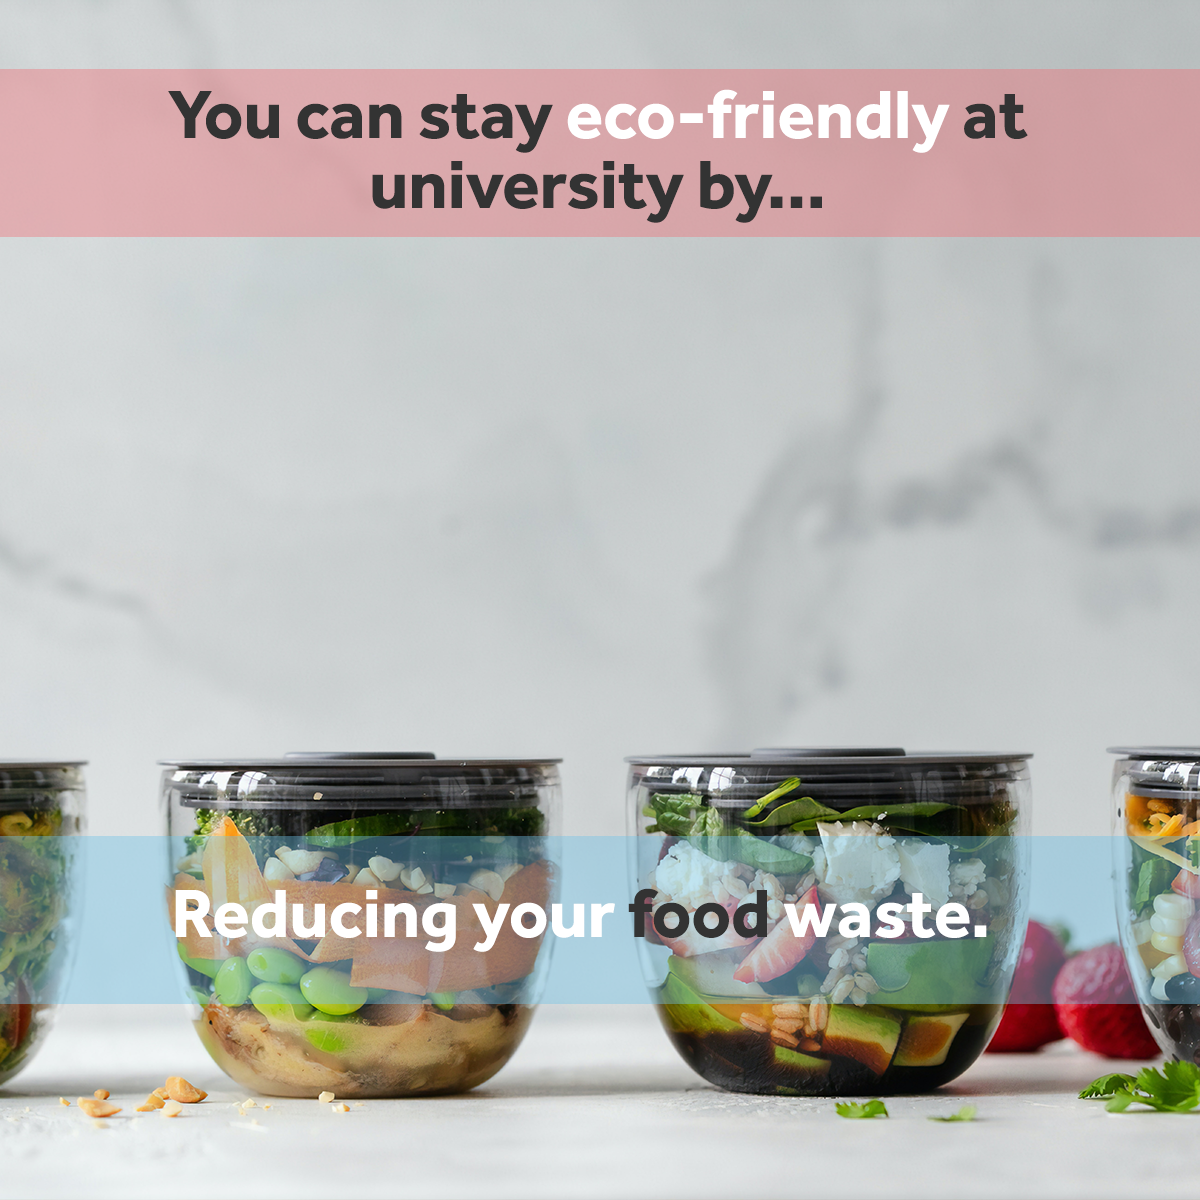 Reduce food waste - staying eco friendly at university